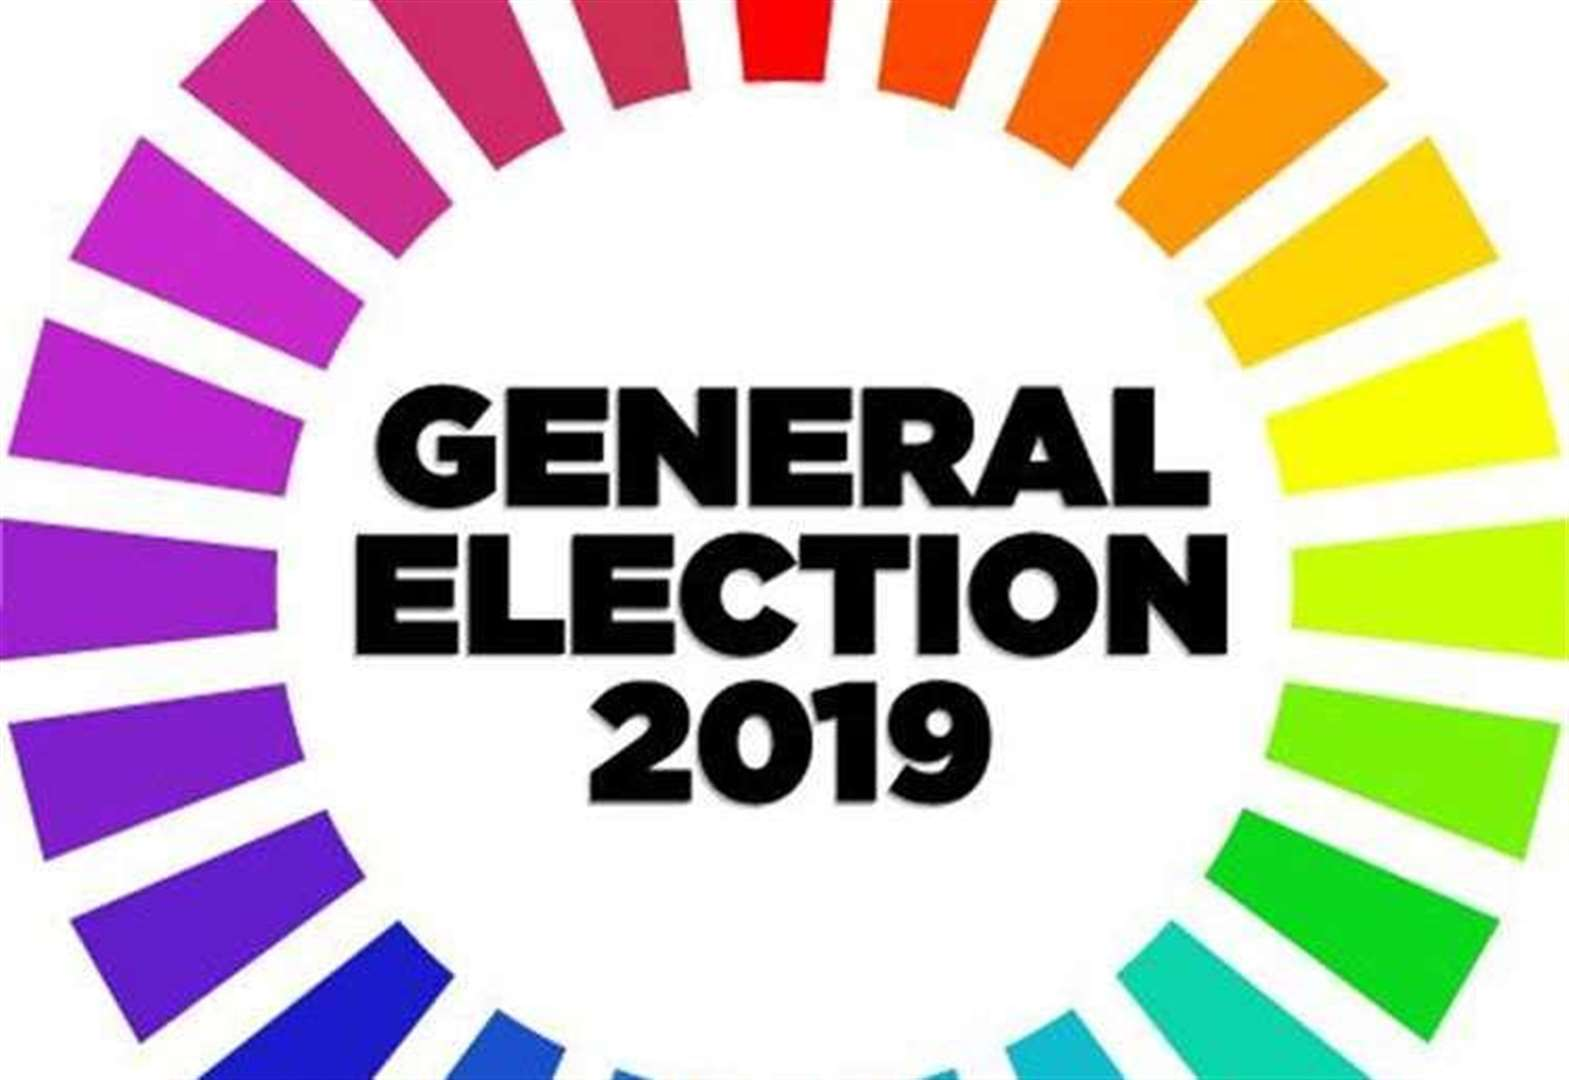 General Election 2019: Hustings organised for Rutland and Melton constituency candidates